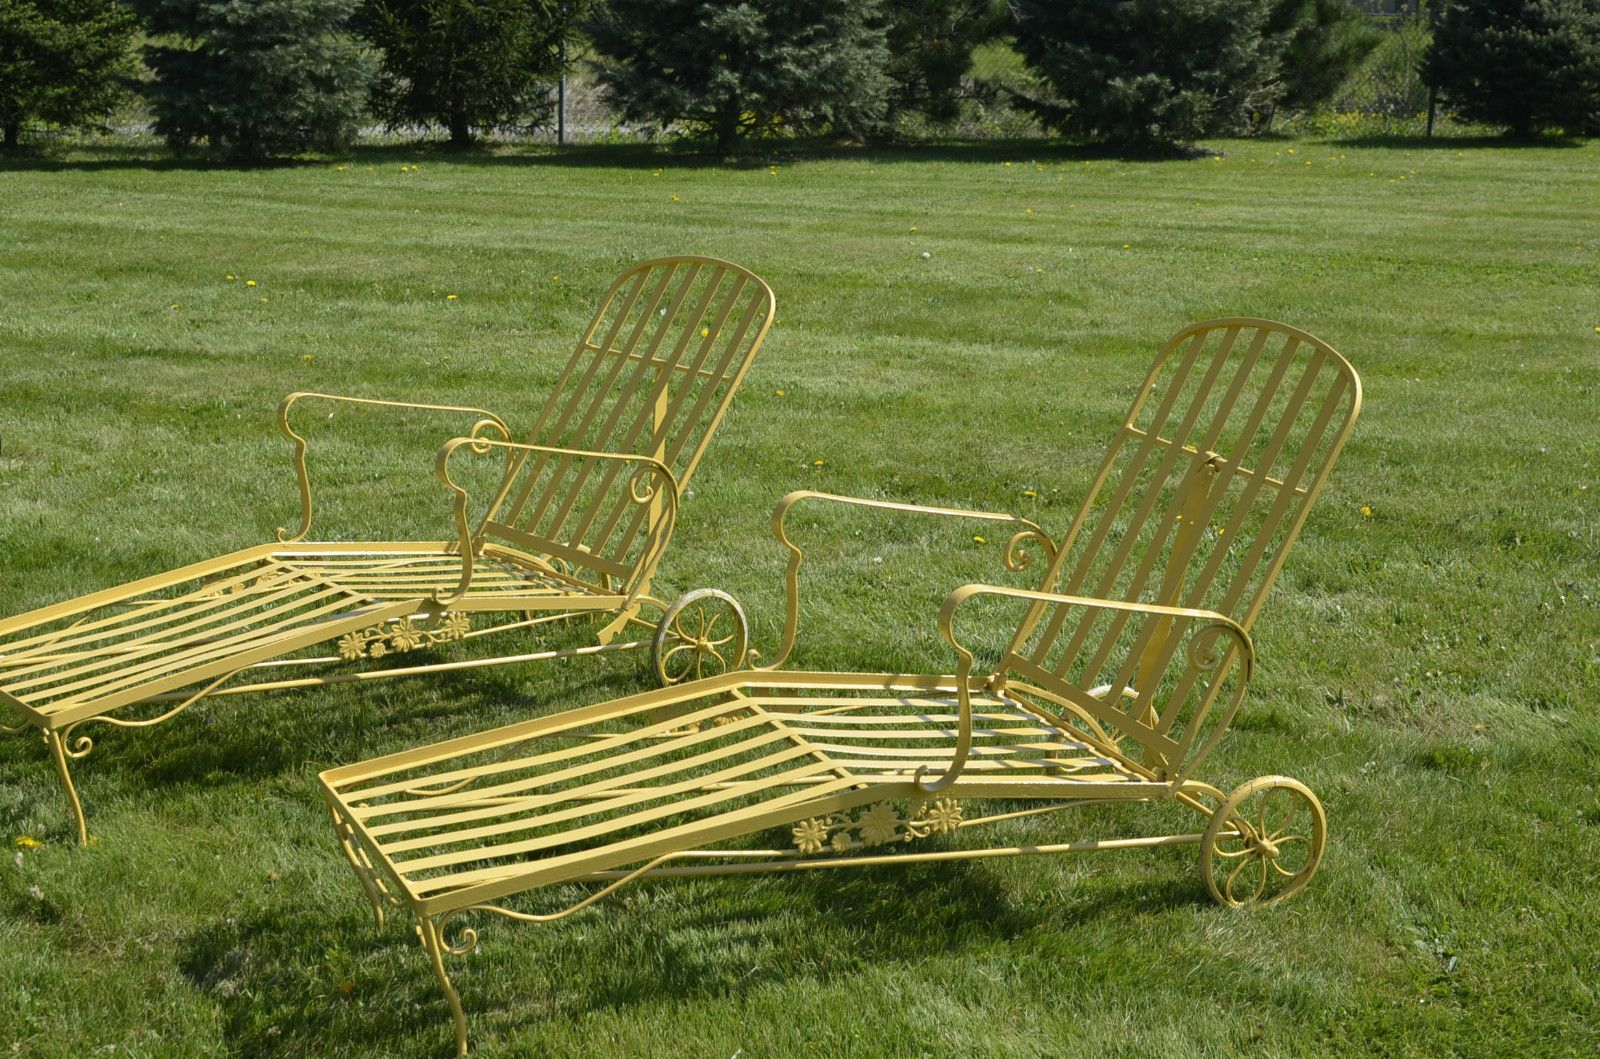 Woodard daisy lounge chairs just wrought iron outdoor patio furniture vintage - Chaise metal vintage ...